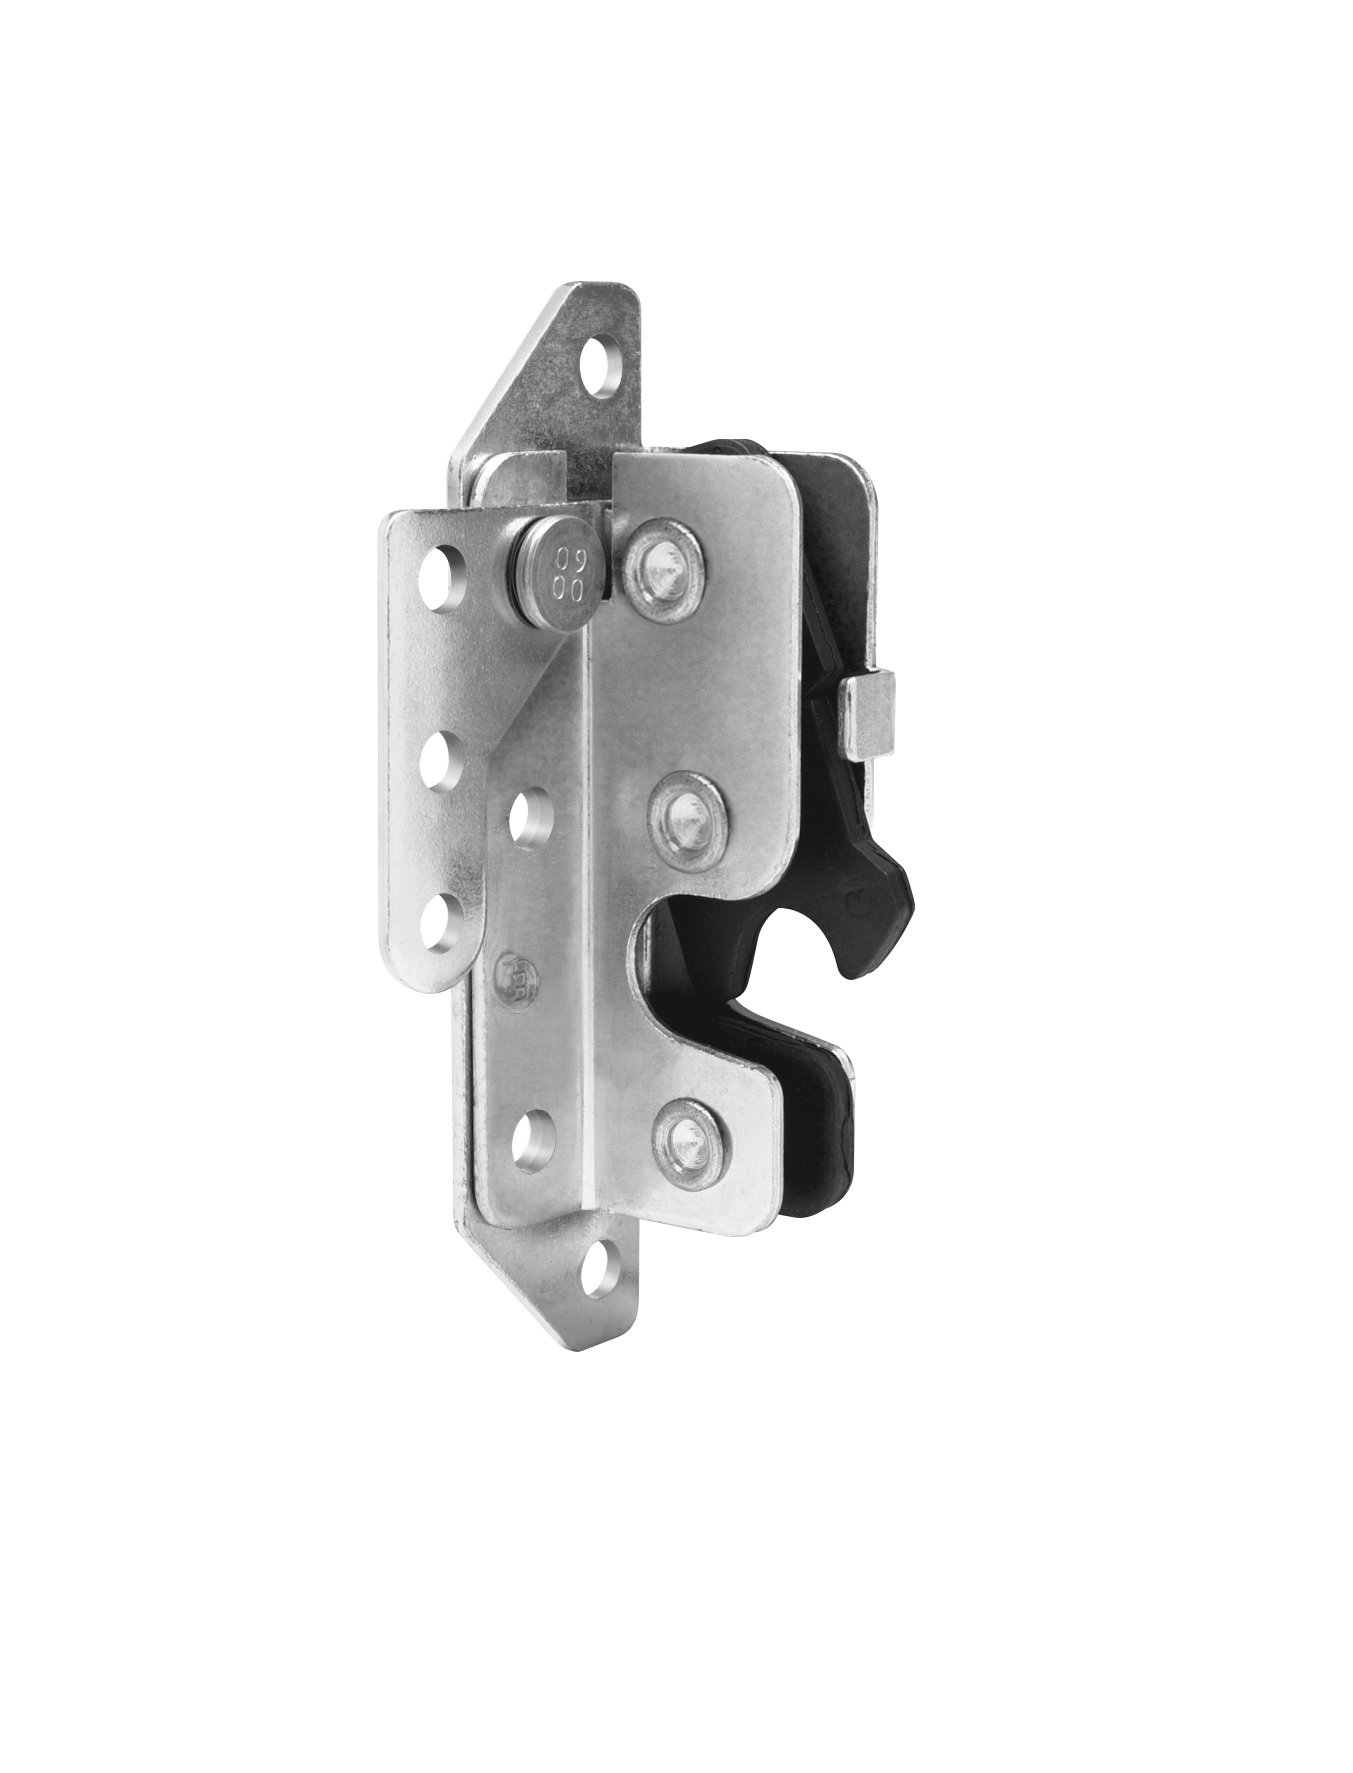 Eberhard Rotary Latch 1-300 Left and Right Hand Image